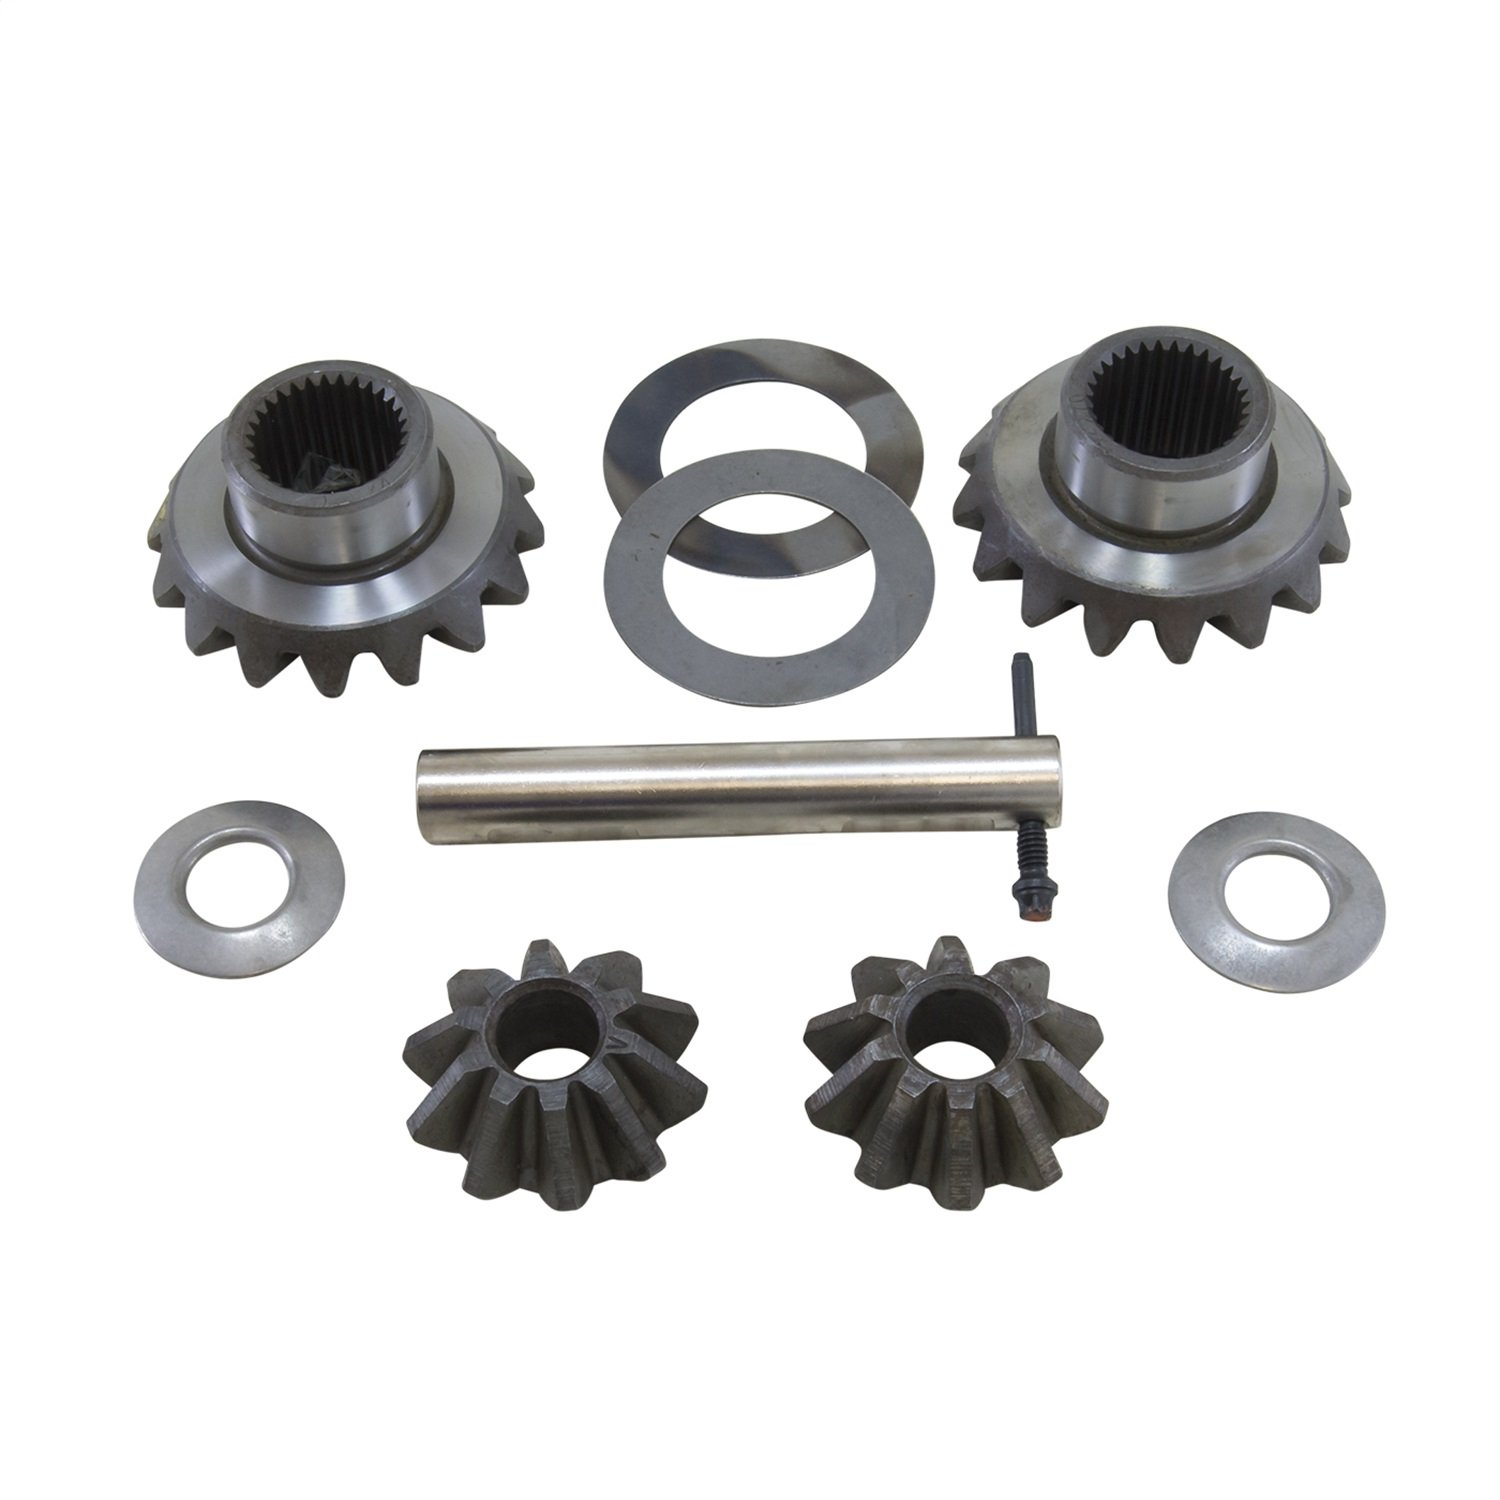 Yukon (YPKD44HD-S-30) Replacement Standard Open Spider Gear Kit for Dana 44HD Differential with 30-Spline Axle Yukon Gear